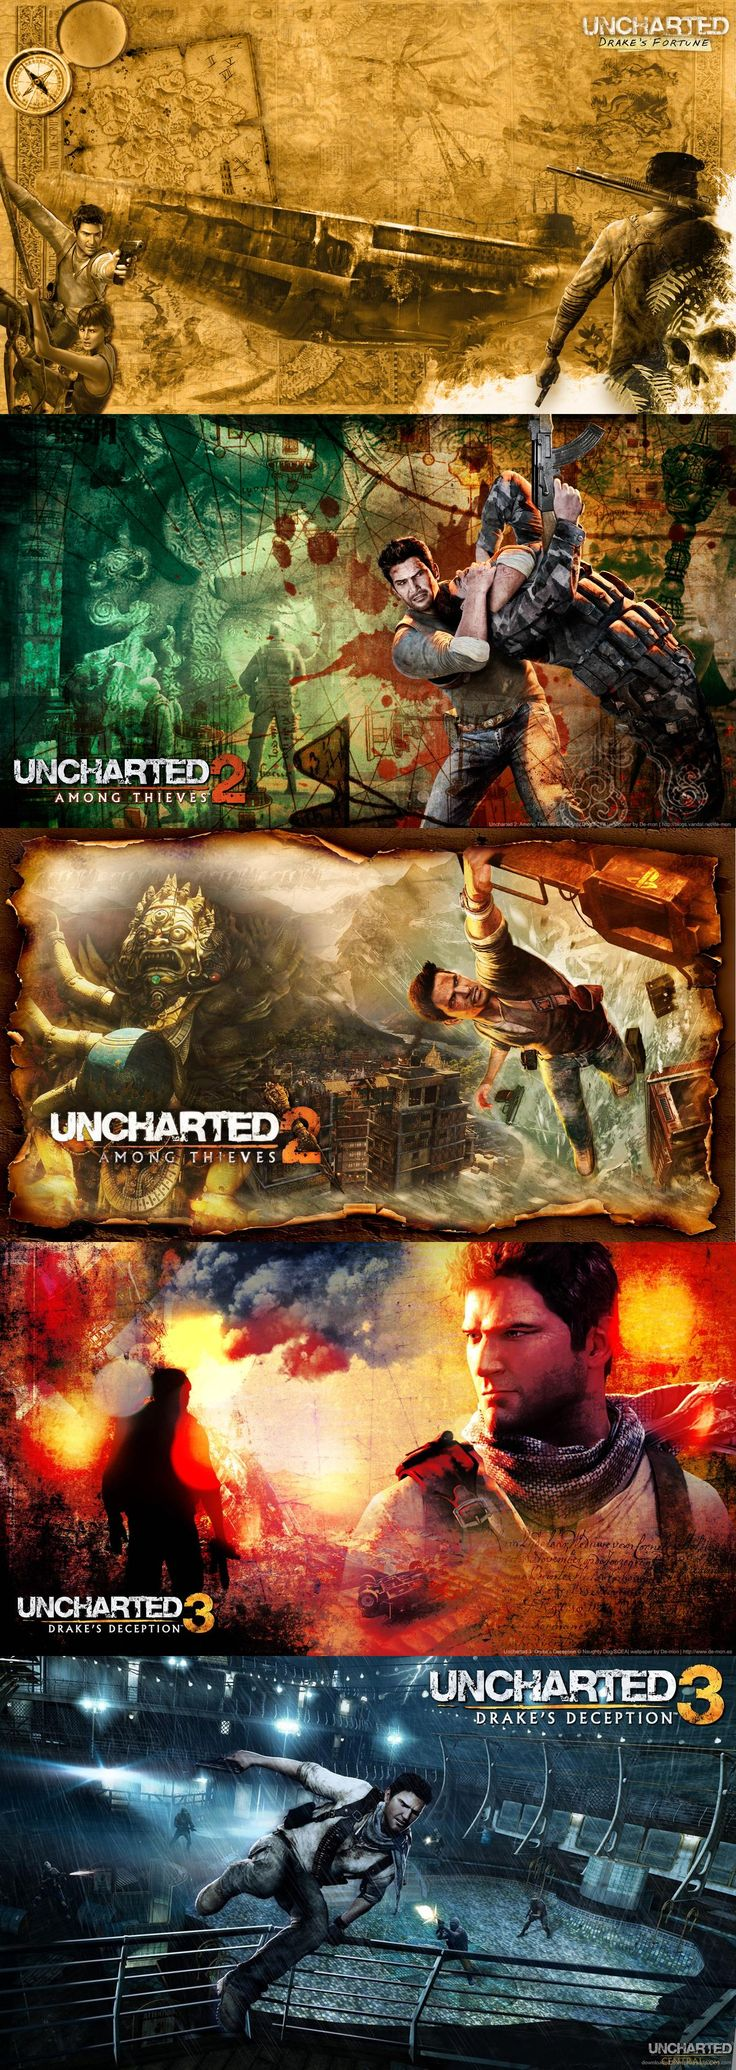 The Uncharted series.